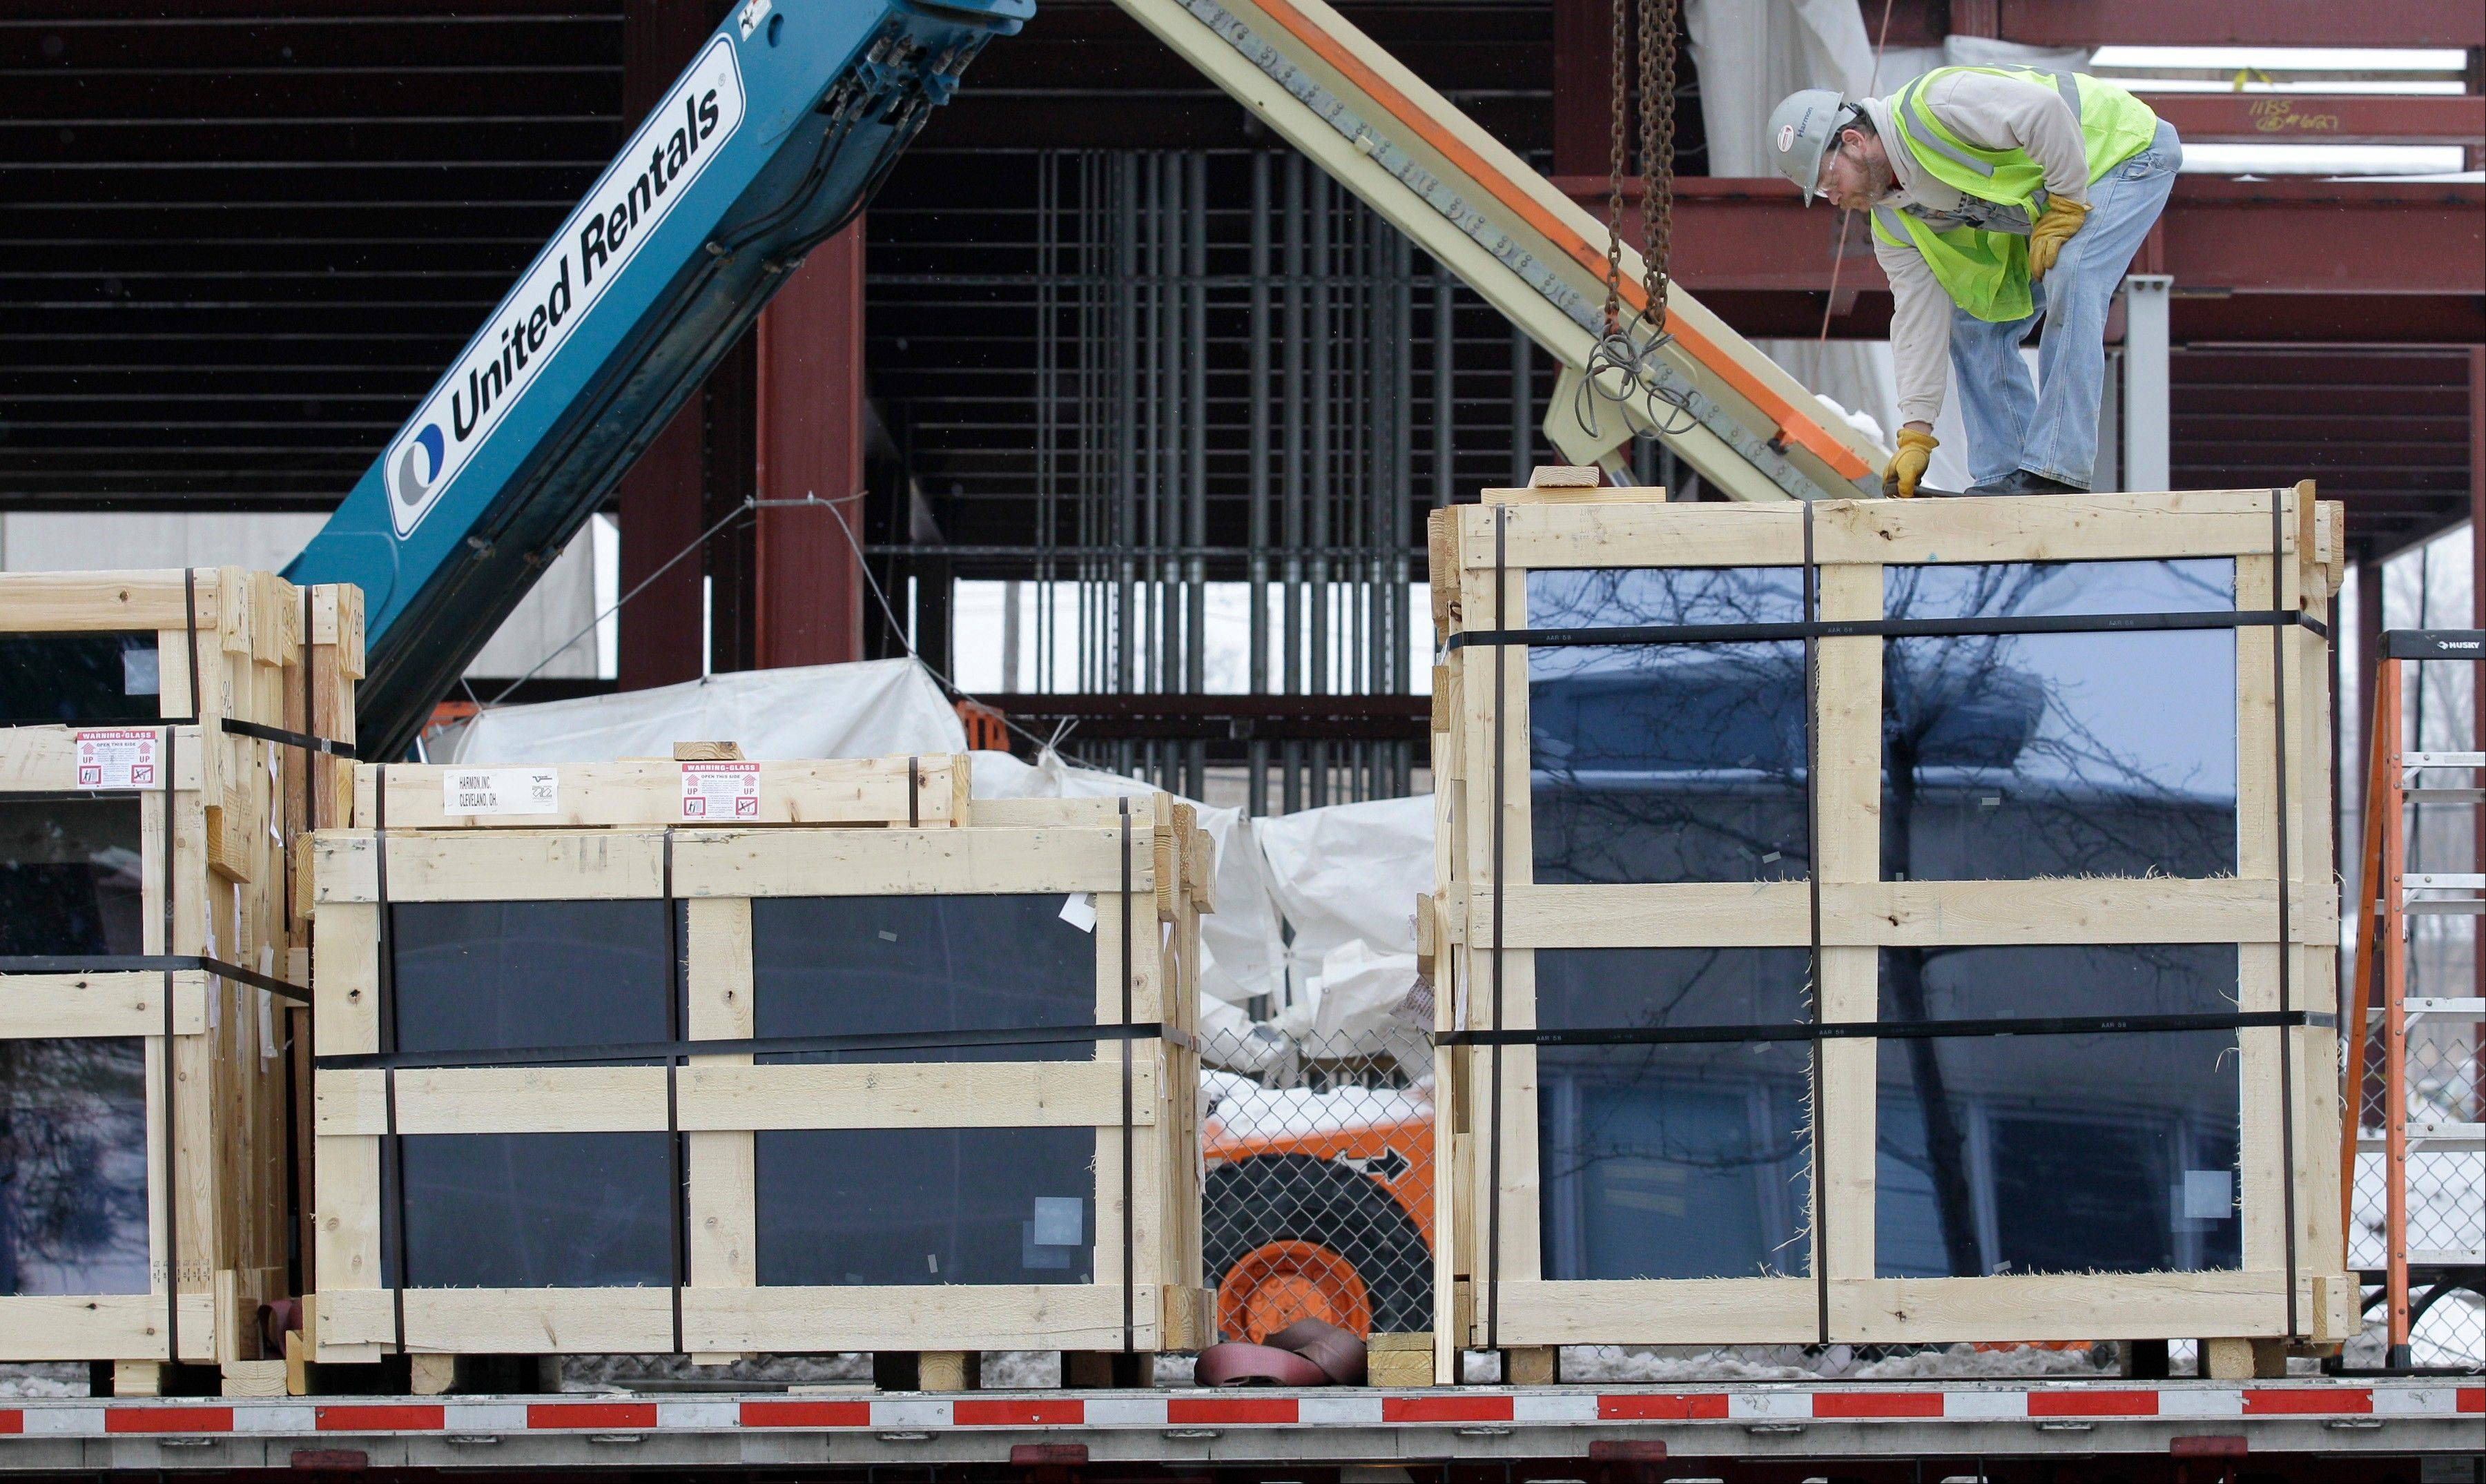 A construction worker unpacks a crate of glass panels for use in a new piece of Cleveland Clinic construction in Cleveland. The future of real estate investing may be less about owning property and more about buying the stocks of real estate investment trusts.